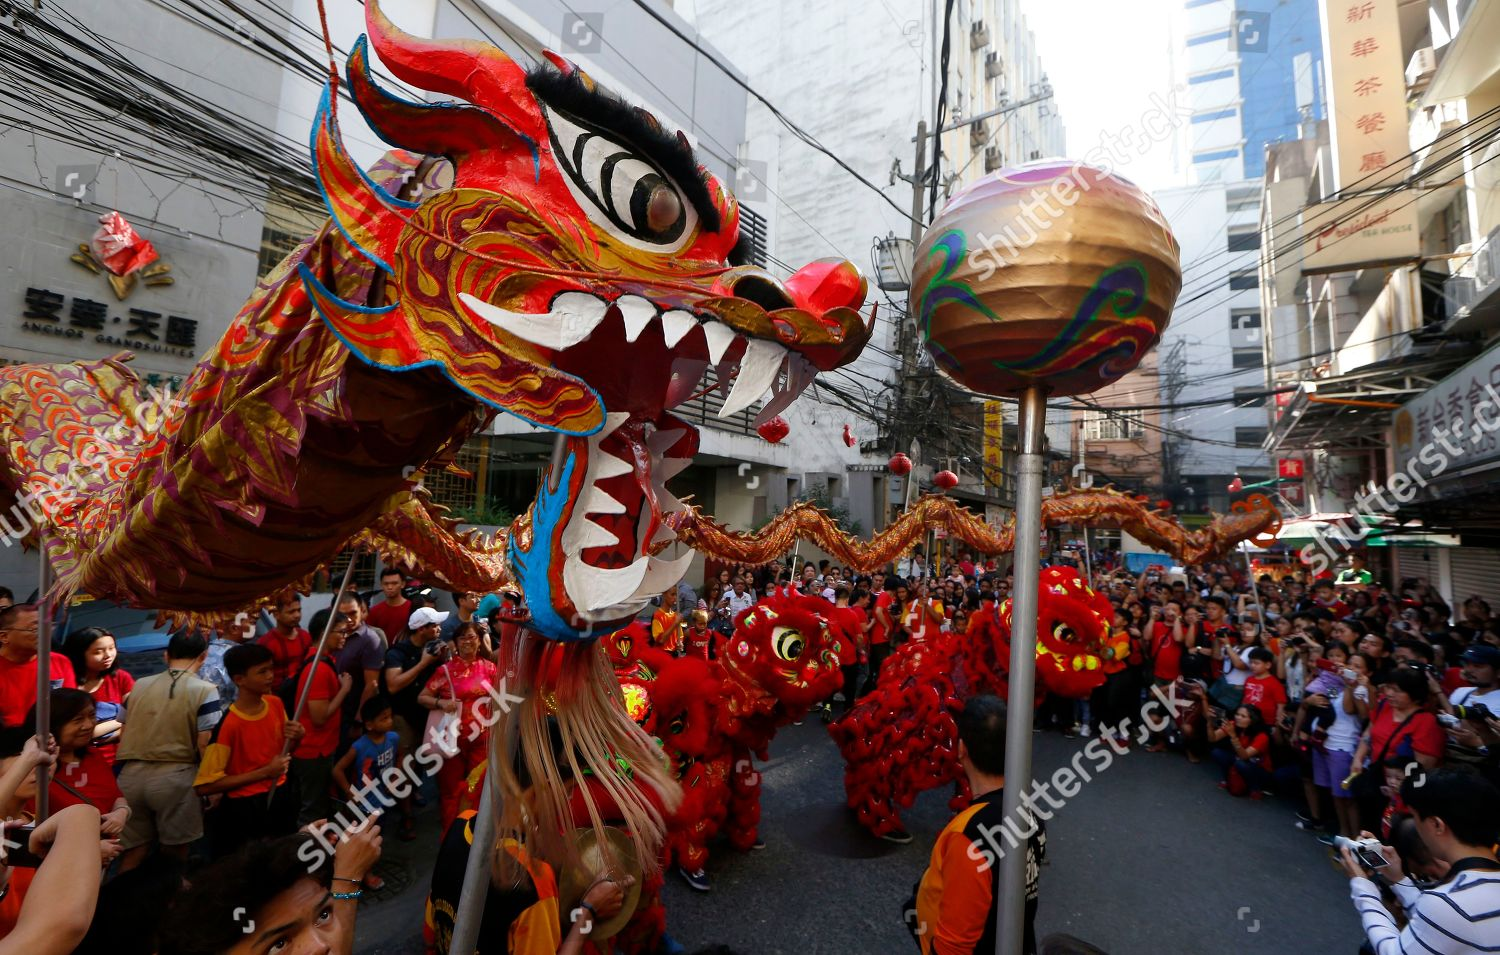 dancers perform traditional lion dragon dances celebration editorial stock photo stock image shutterstock https www shutterstock com editorial image editorial lunar new year manila philippines 05 feb 2019 10083143a